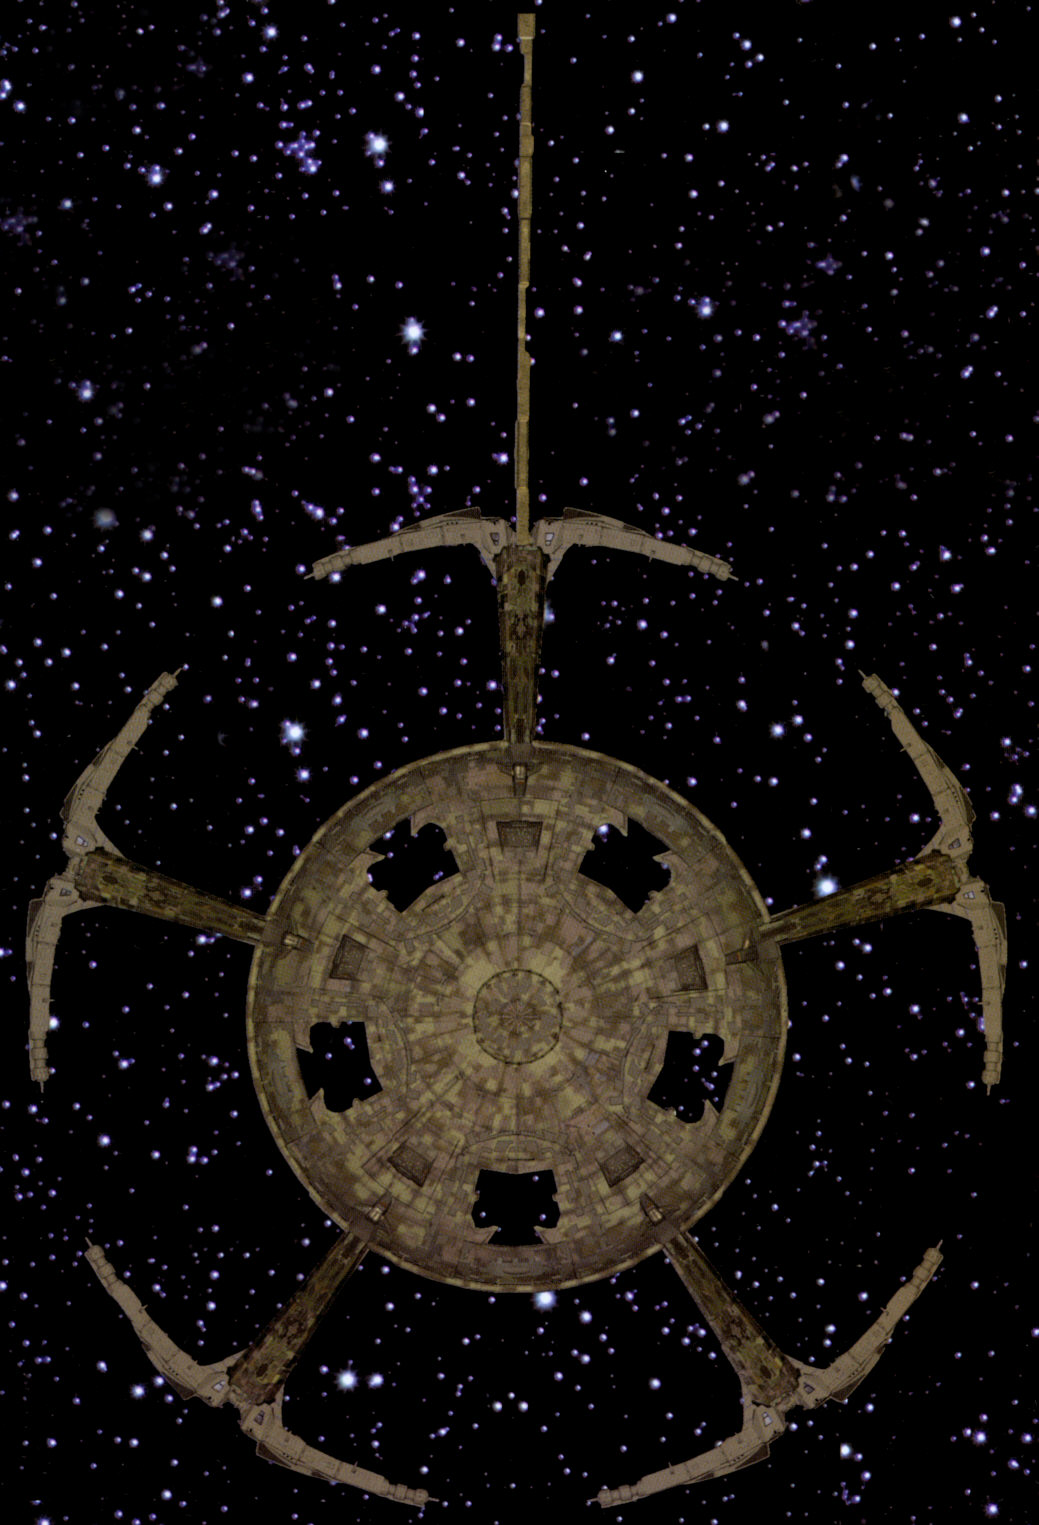 cardassian space station - photo #11